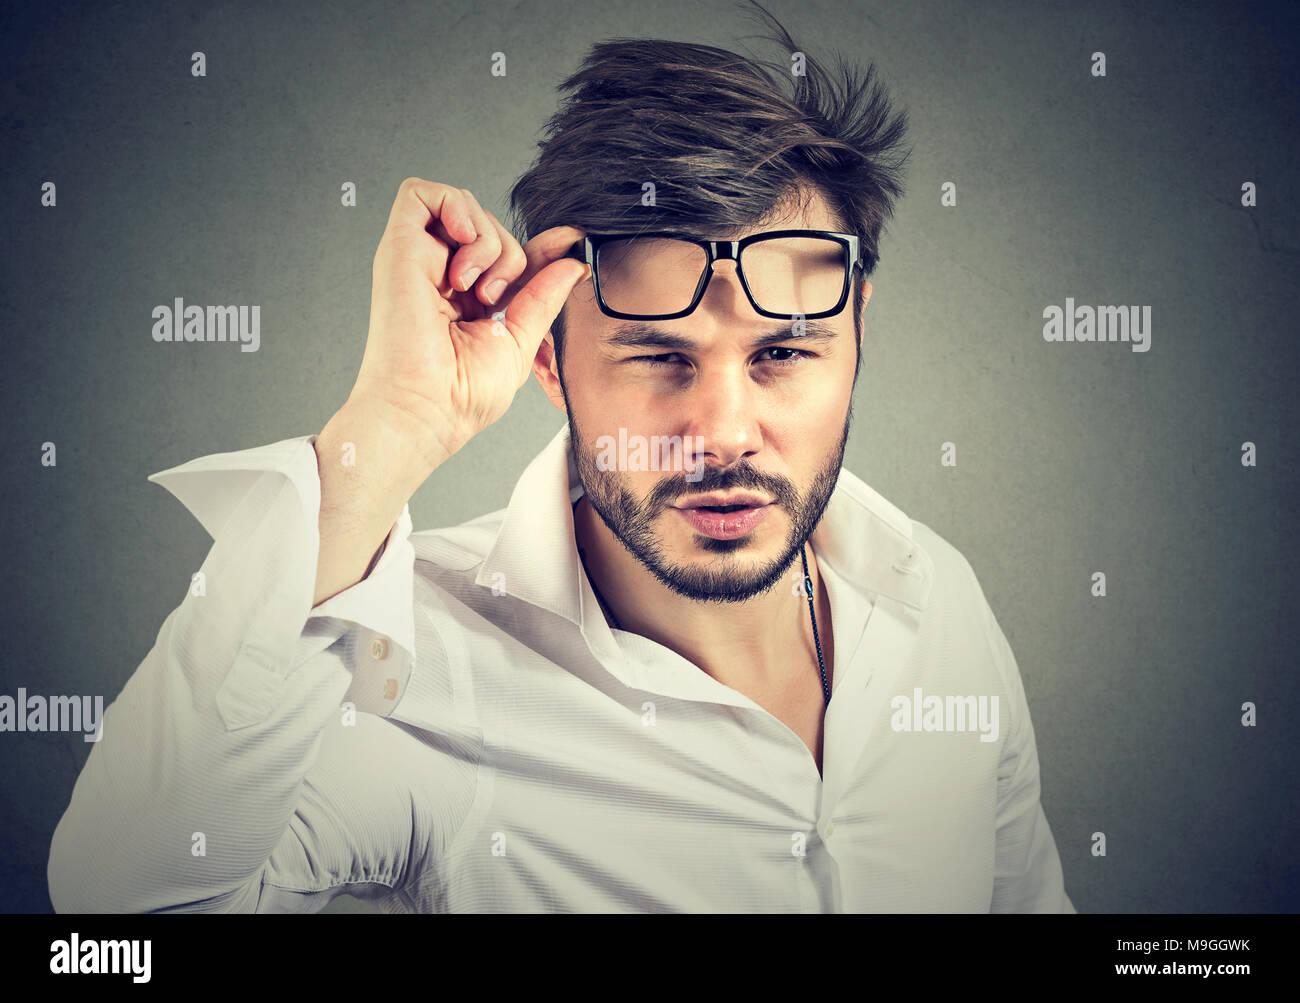 Young man in formal shirt taking off eyeglasses looking at camera with doubts. Stock Photo